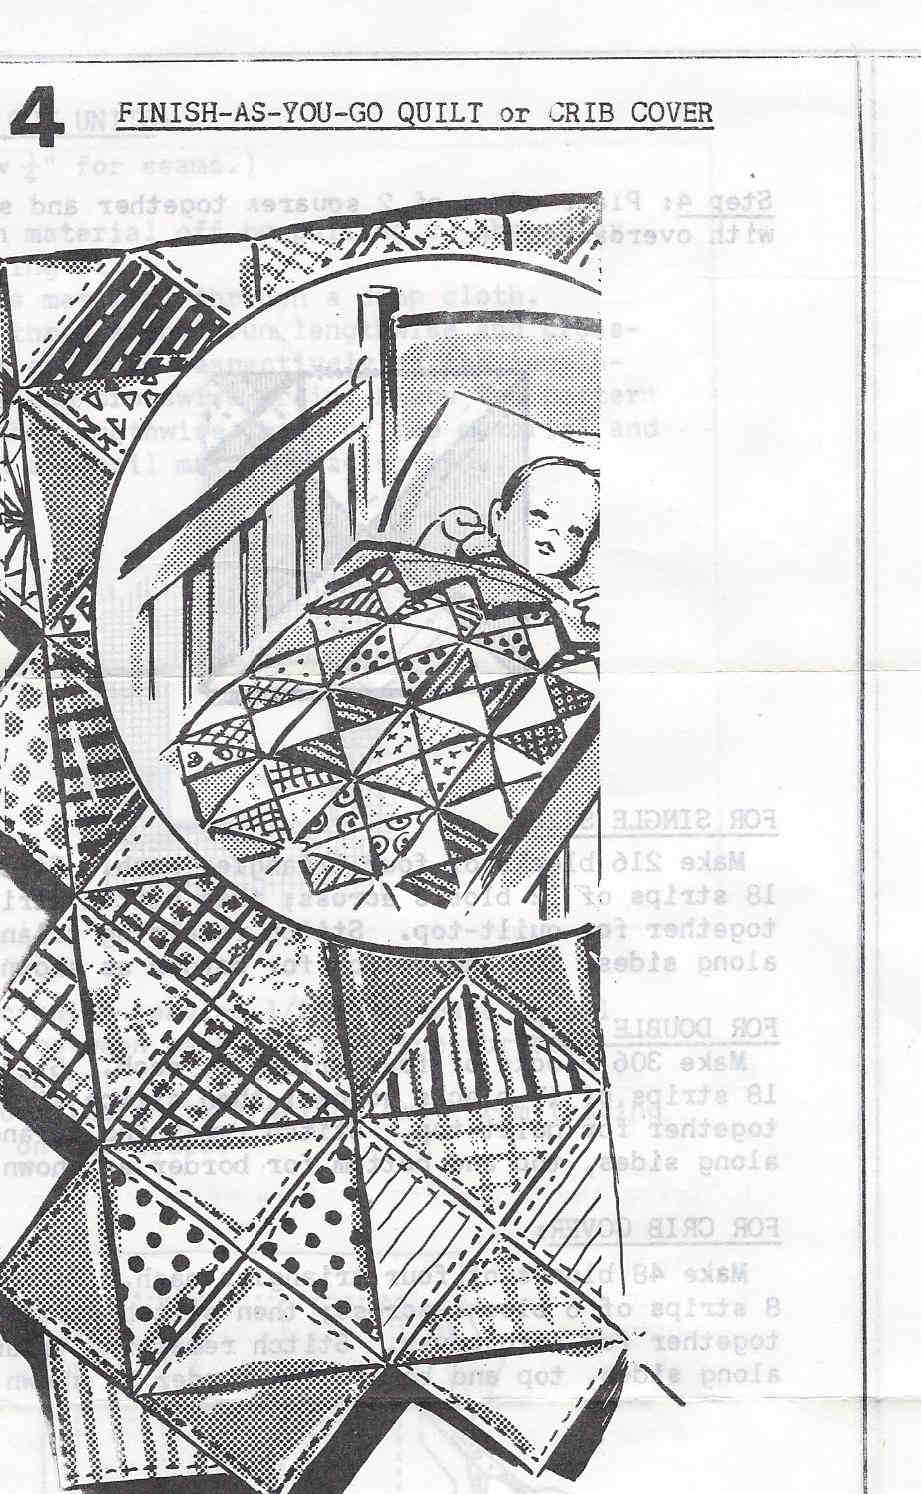 crib quilt sewing pattern